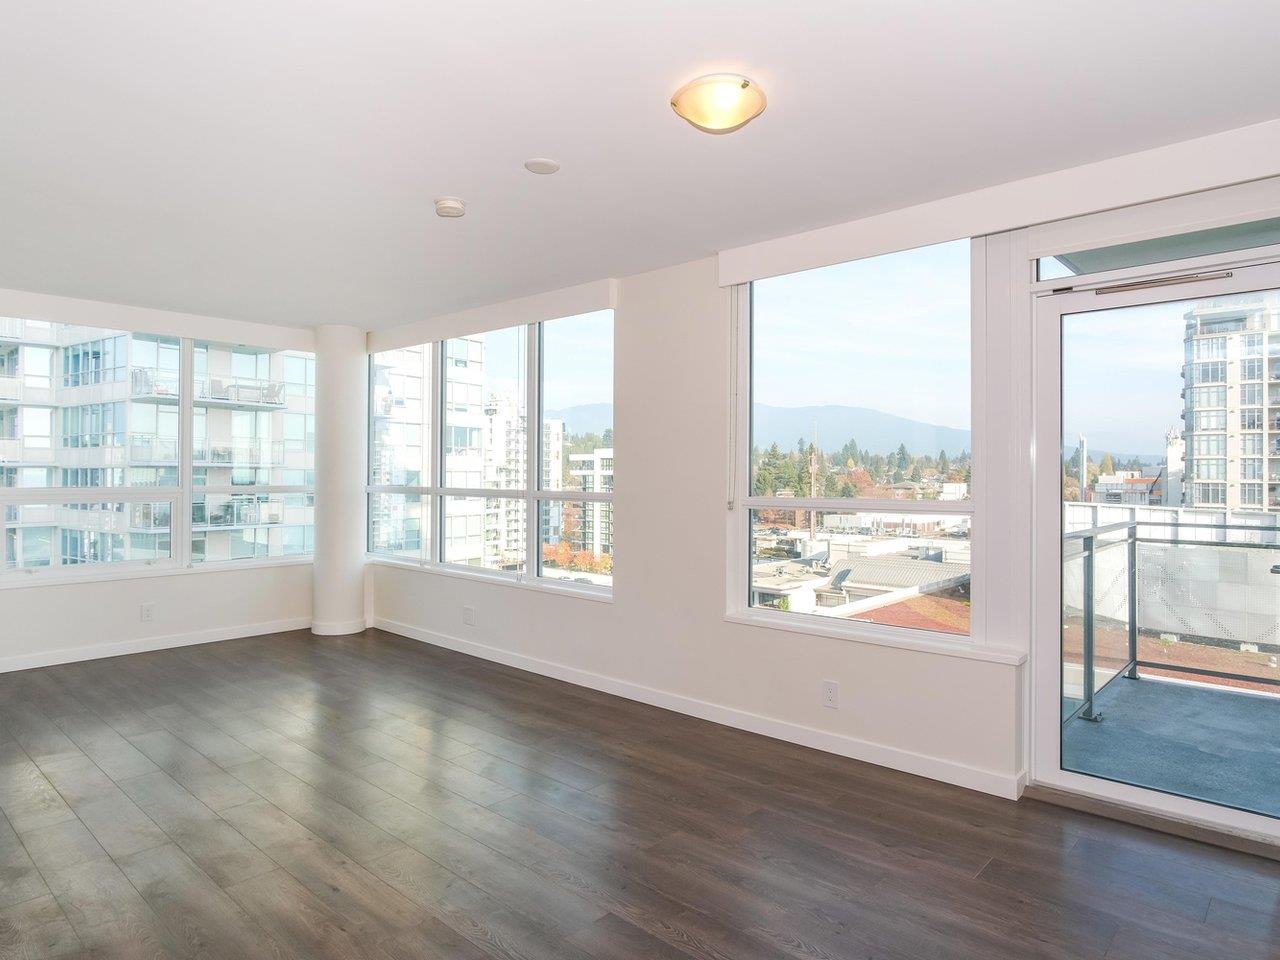 1002 112 E 13TH STREET - Central Lonsdale Apartment/Condo for sale, 2 Bedrooms (R2404786) - #3